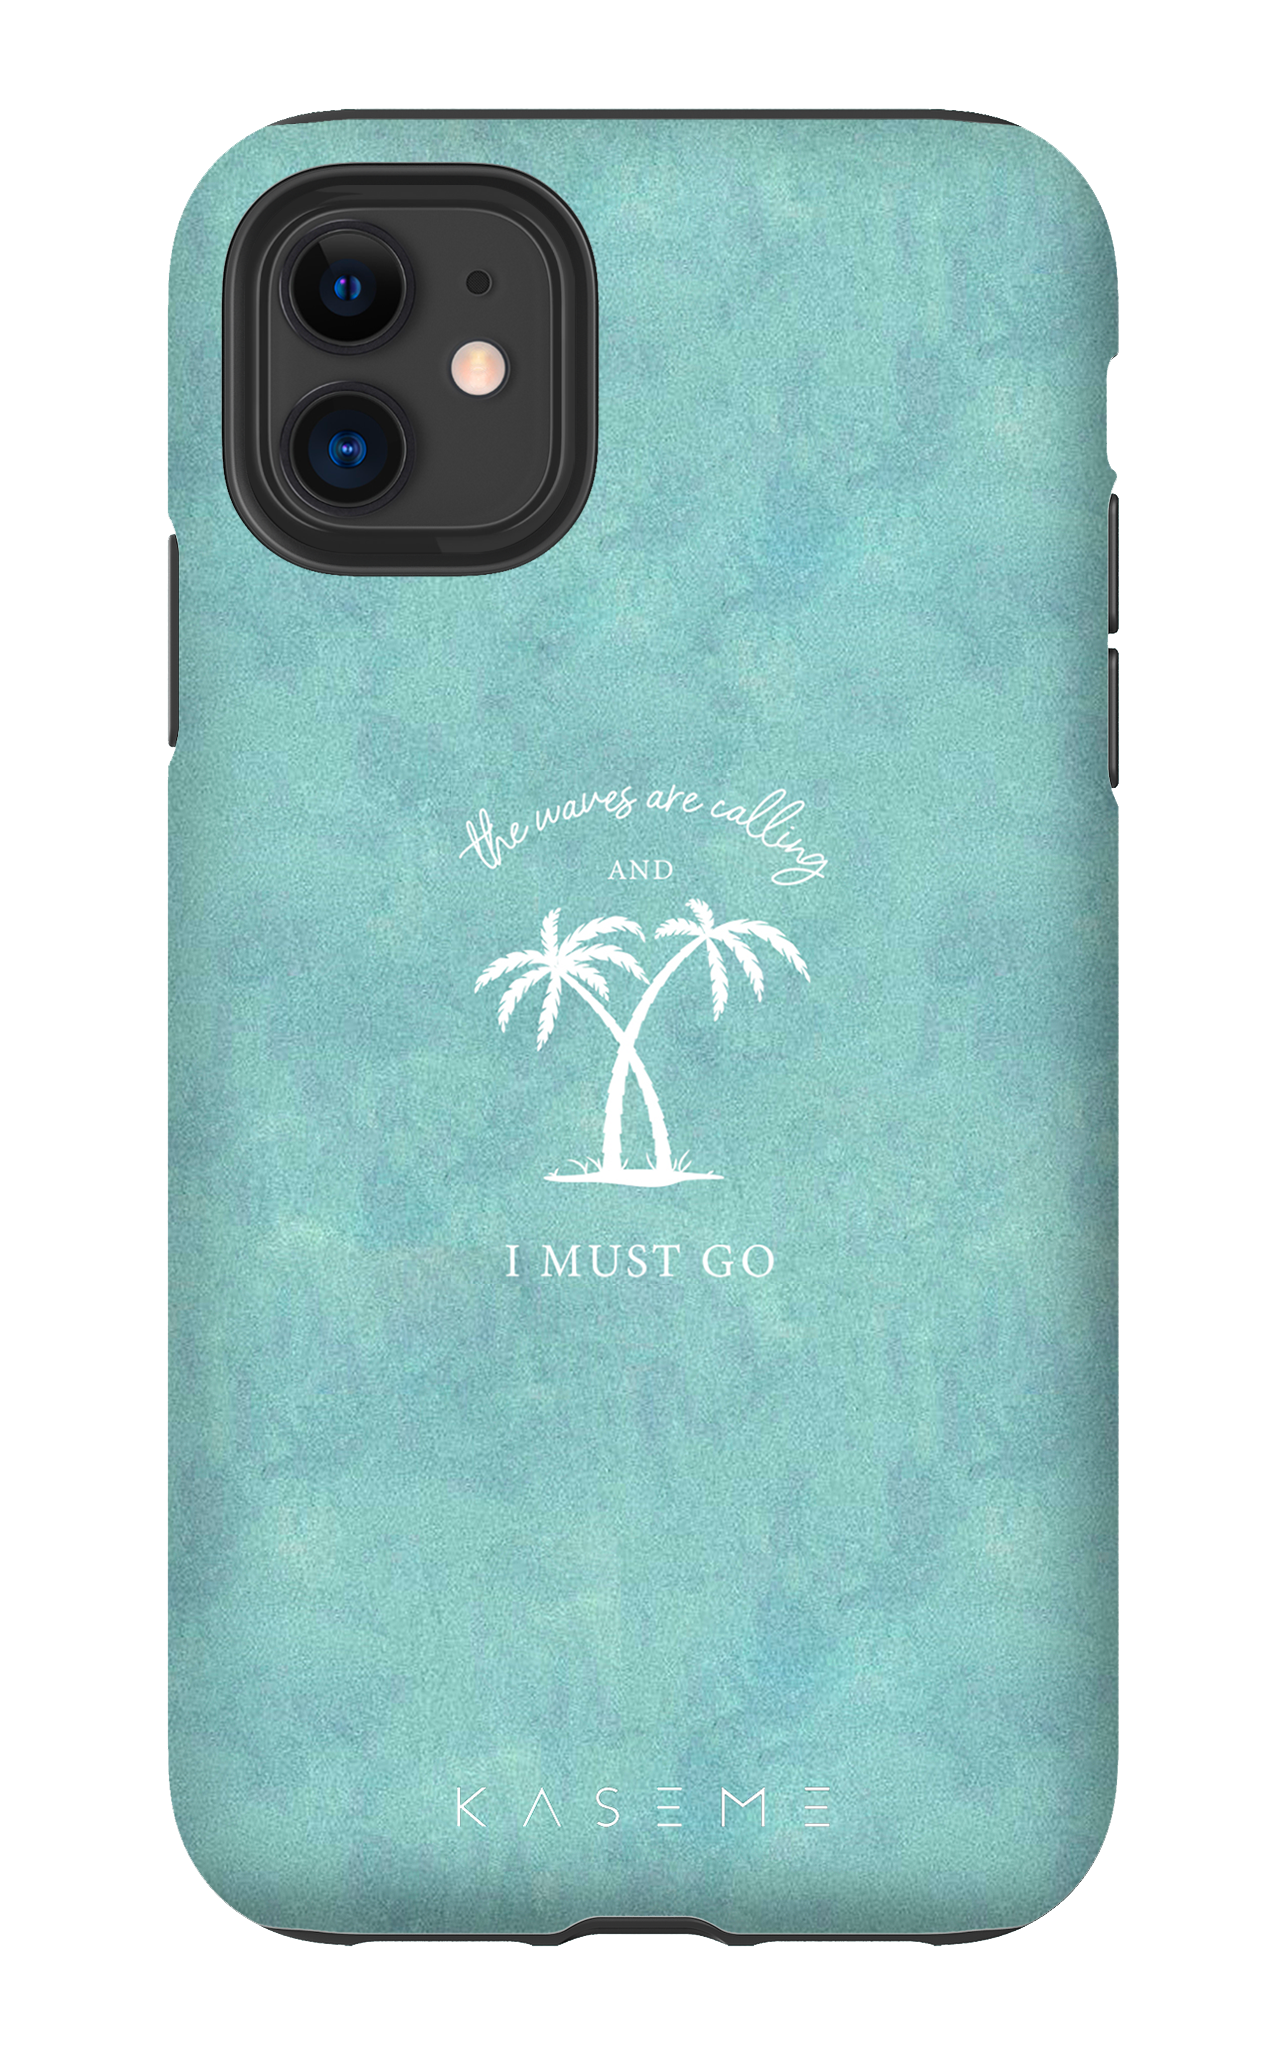 Southern phone case